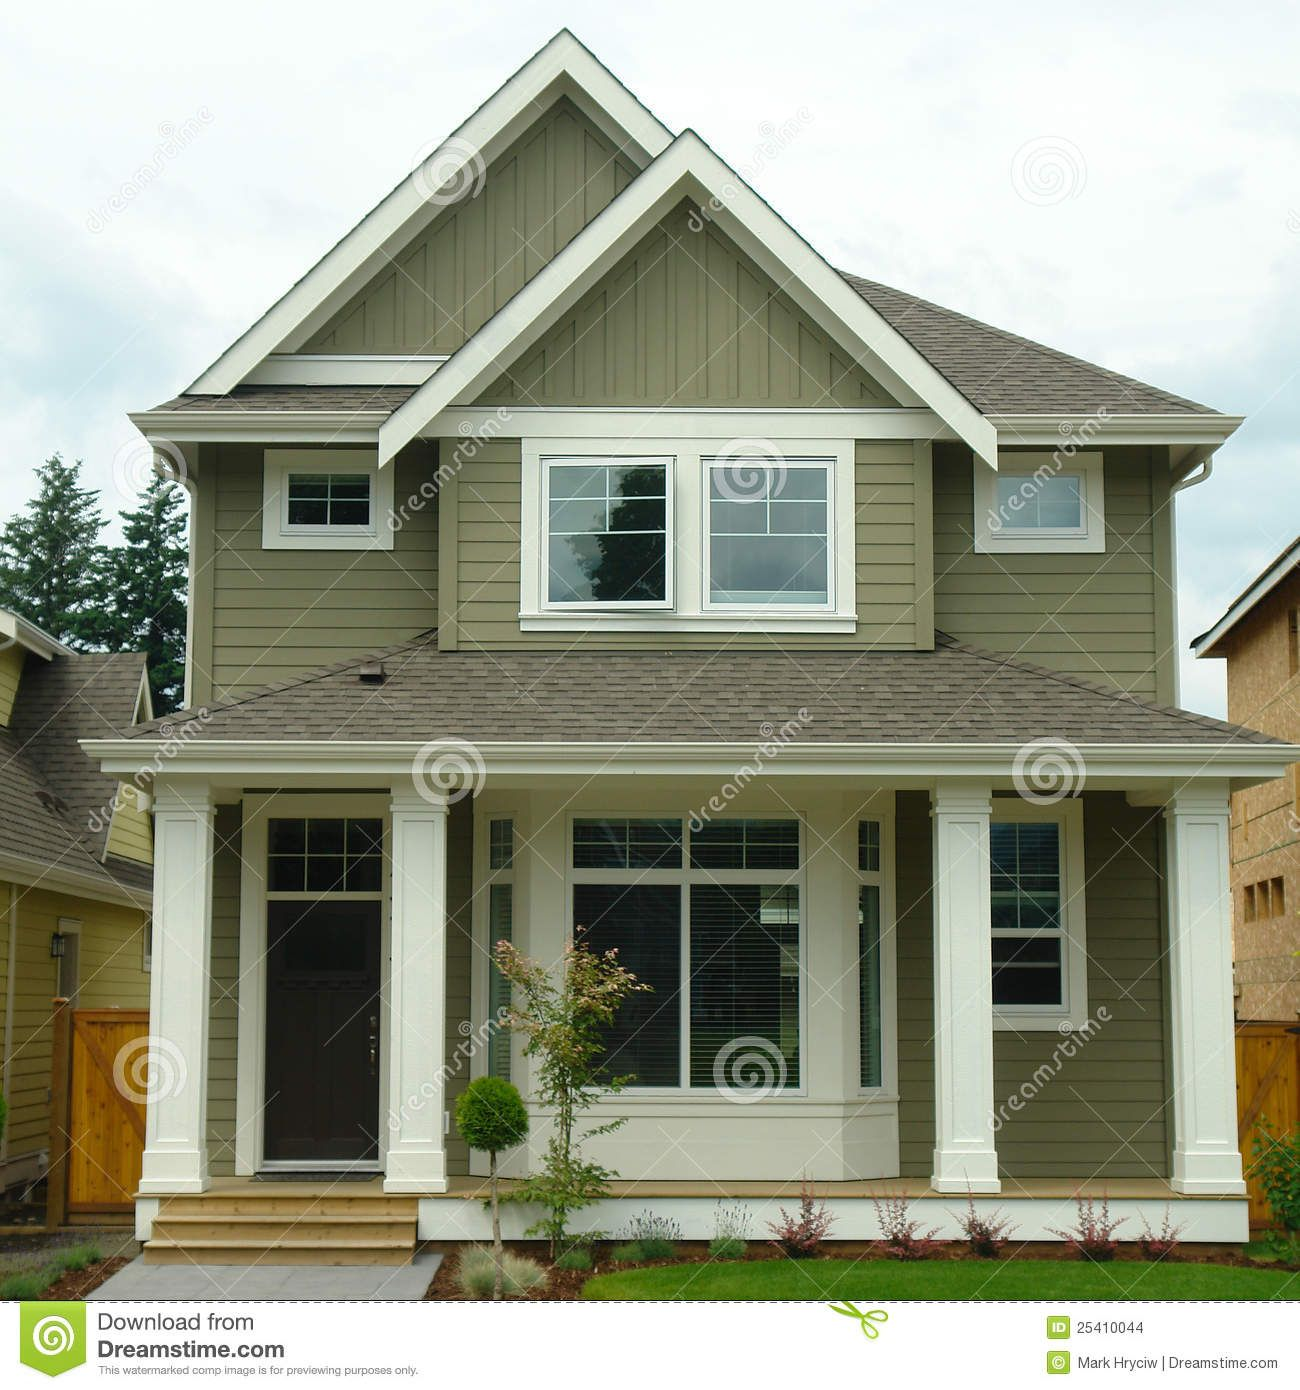 Forest green exterior house color new home house for Exterior home painting